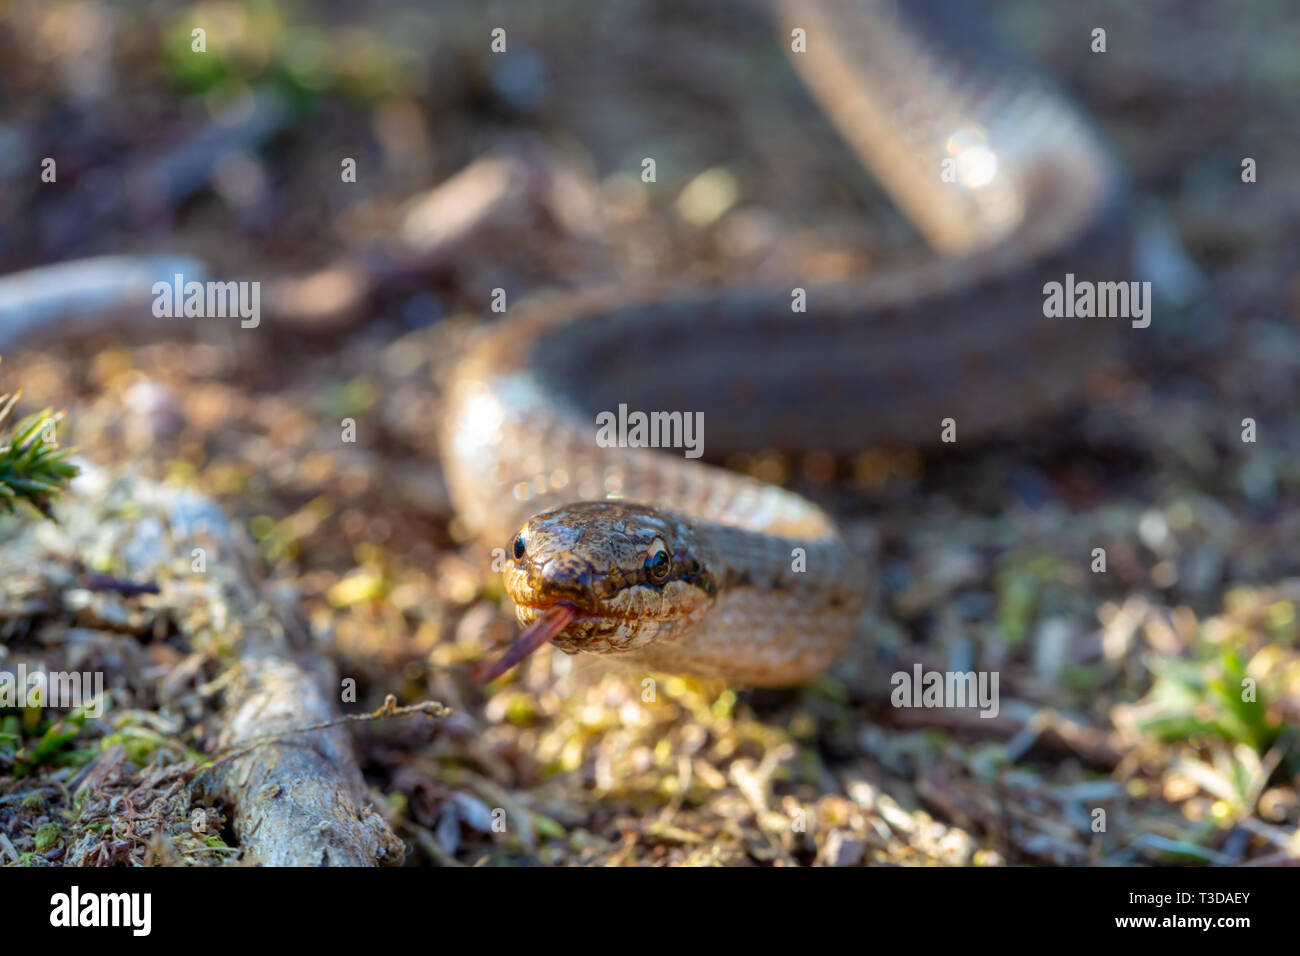 Creative colour portrait photograph with selective focus on Smooth snakes eyes (Coronella austriaca) taken on heathland nature reserve within Poole, D - Stock Image